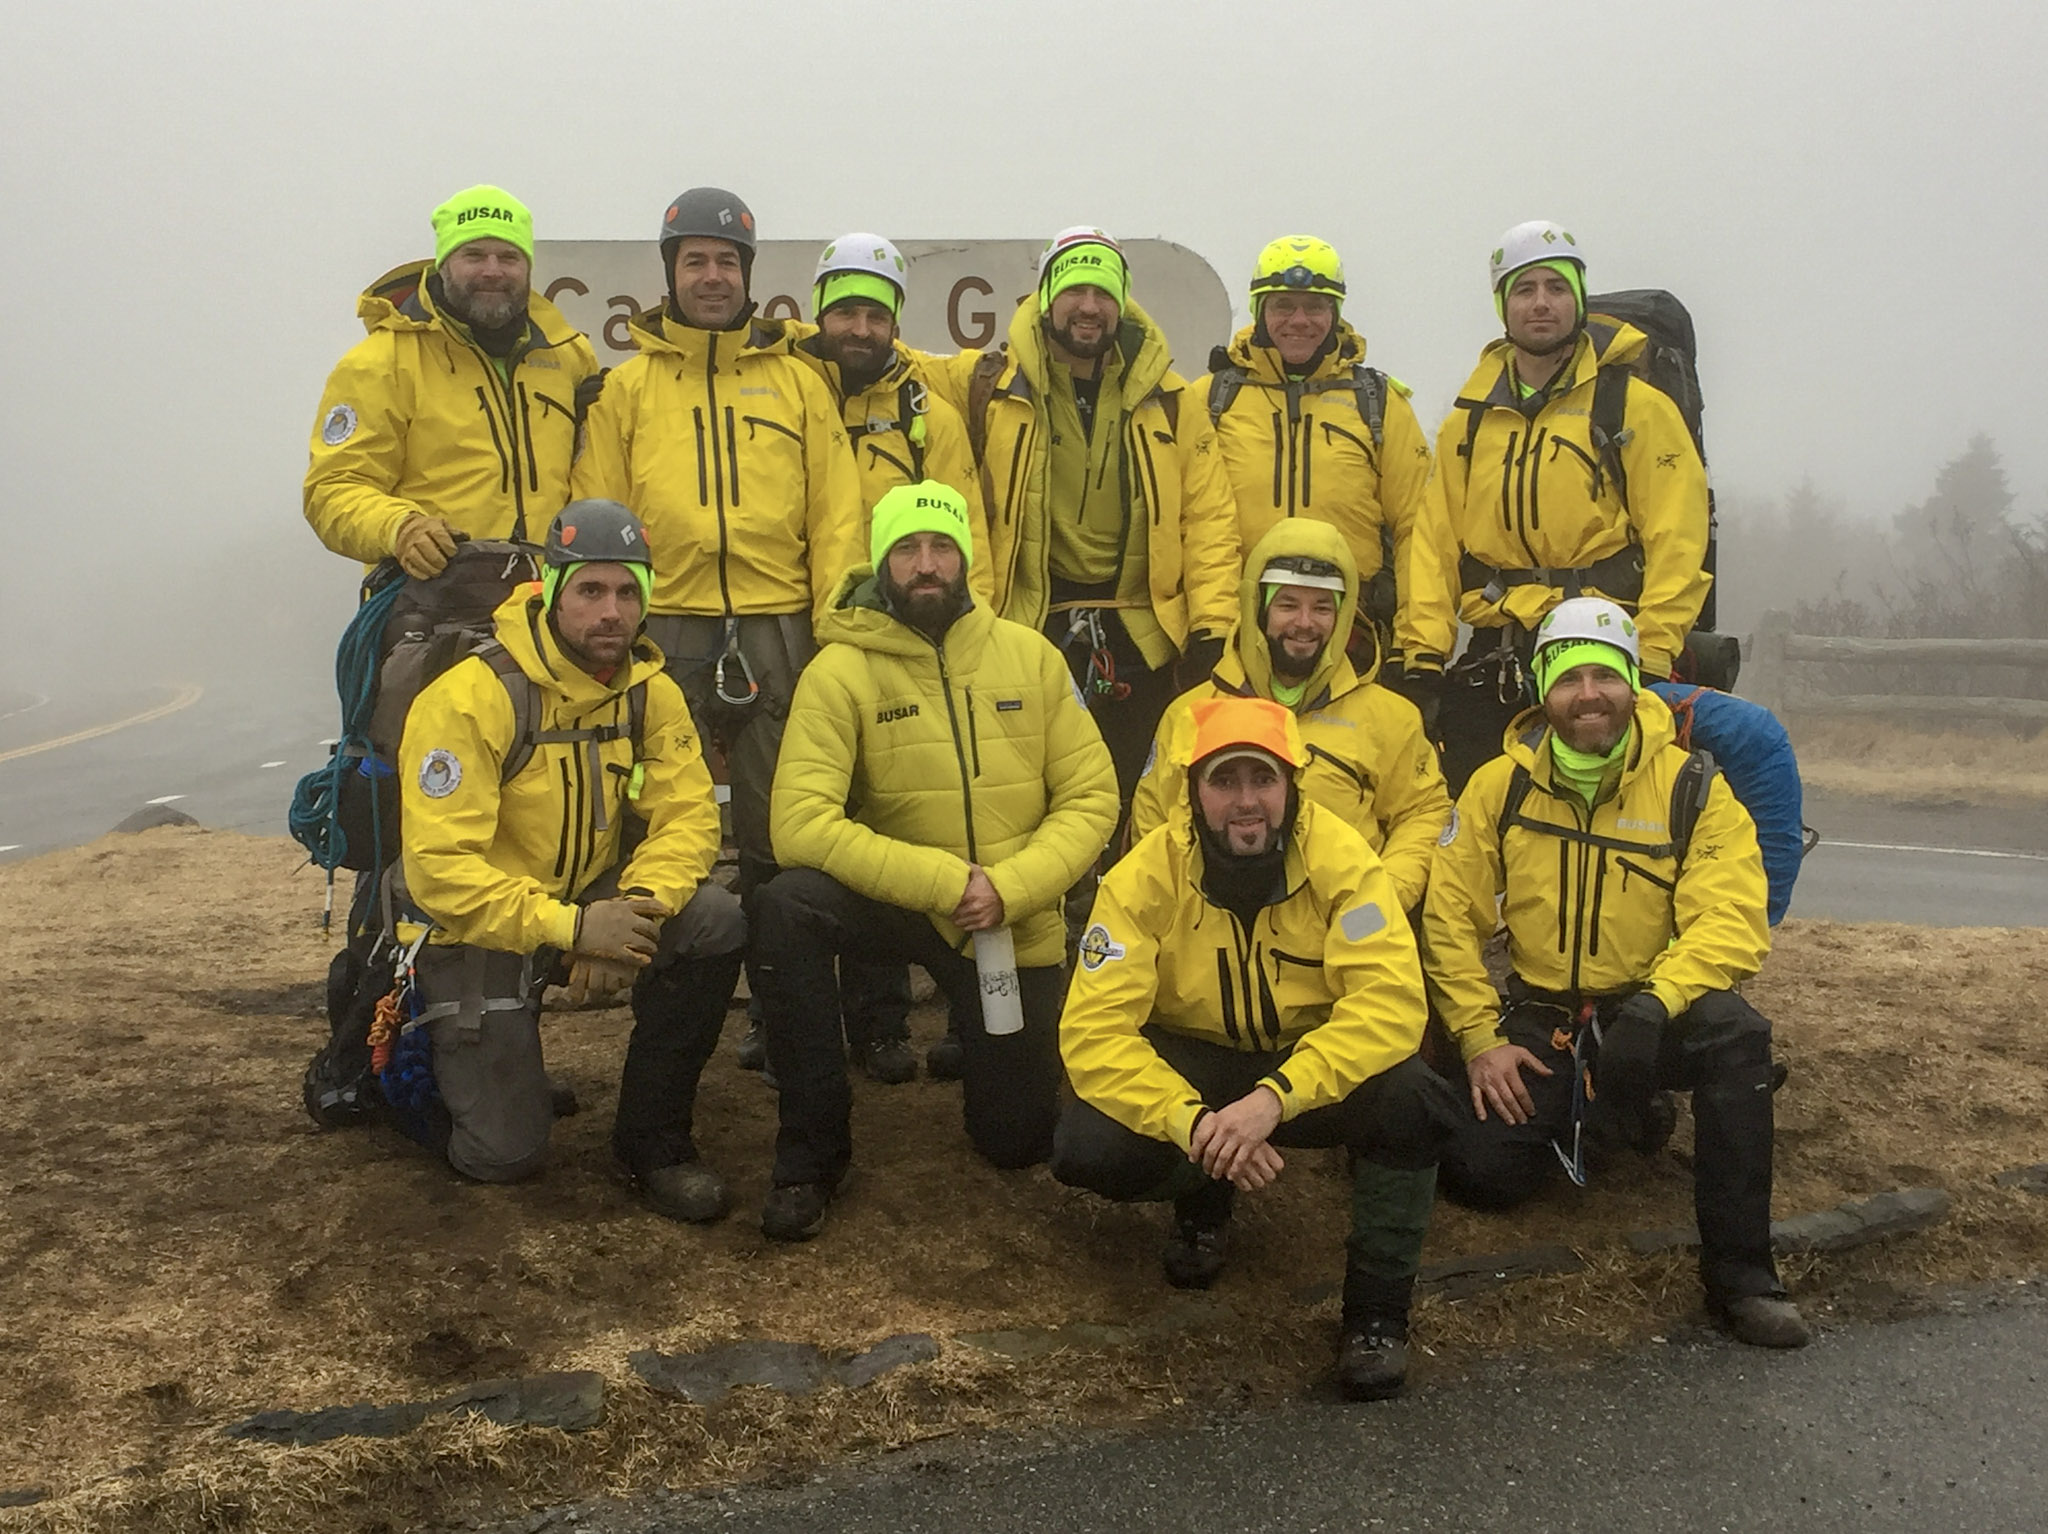 Team members during winter rescue training.